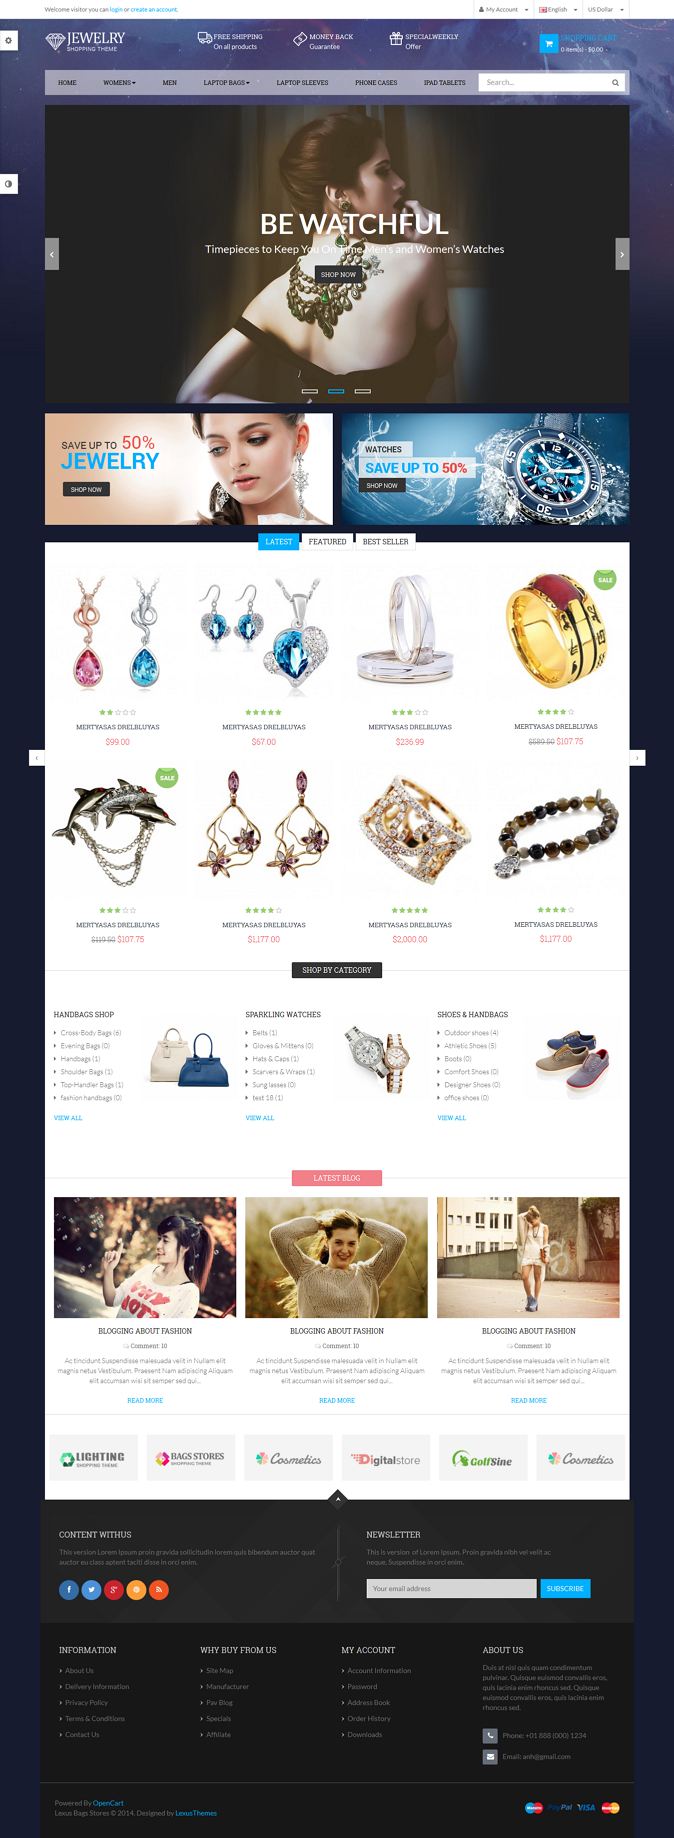 BagsStpre is a Responsive Opencart Template suitable for any kind of Bags Store, Gift Shop, Jewe ...